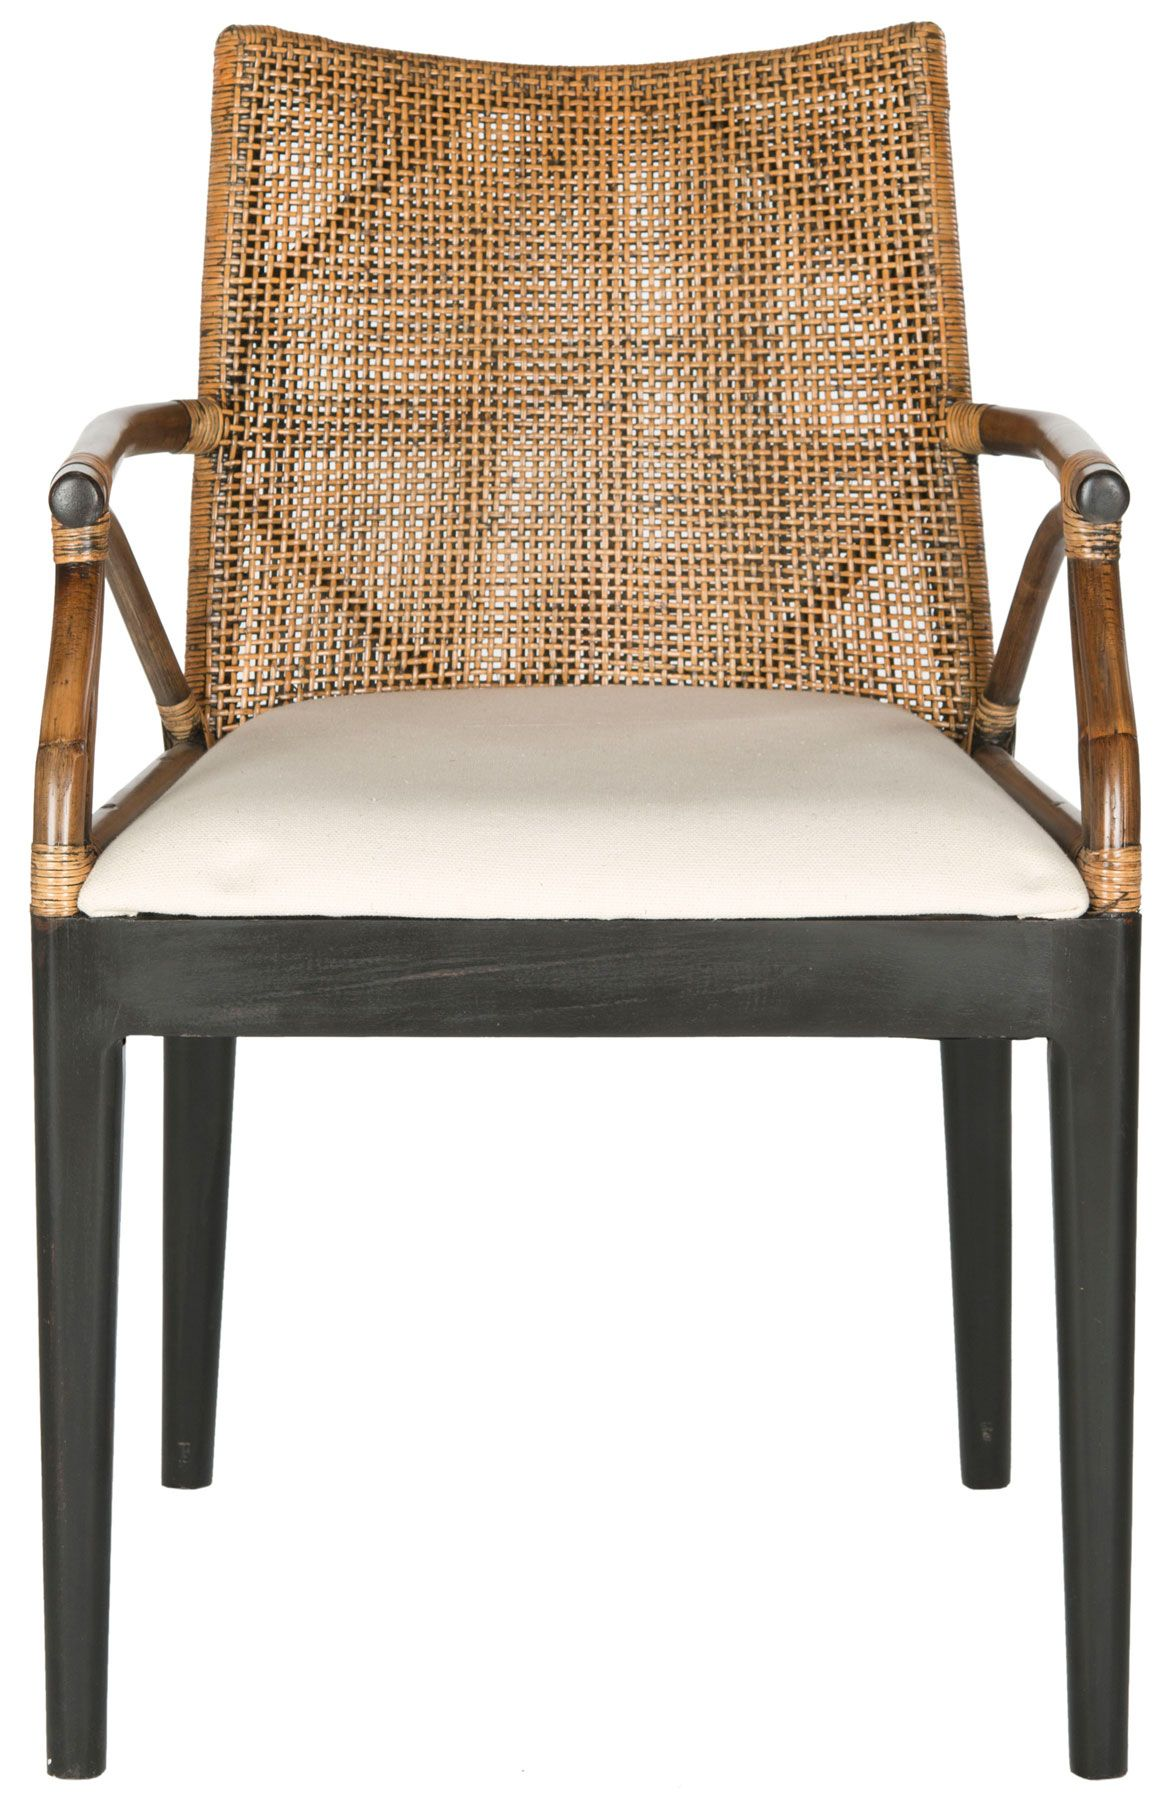 dining room arm chairs modern accent furniture table arms and with architecture custom wood chair bassett intended for from round cover bar height brass hairpin legs moroccan high